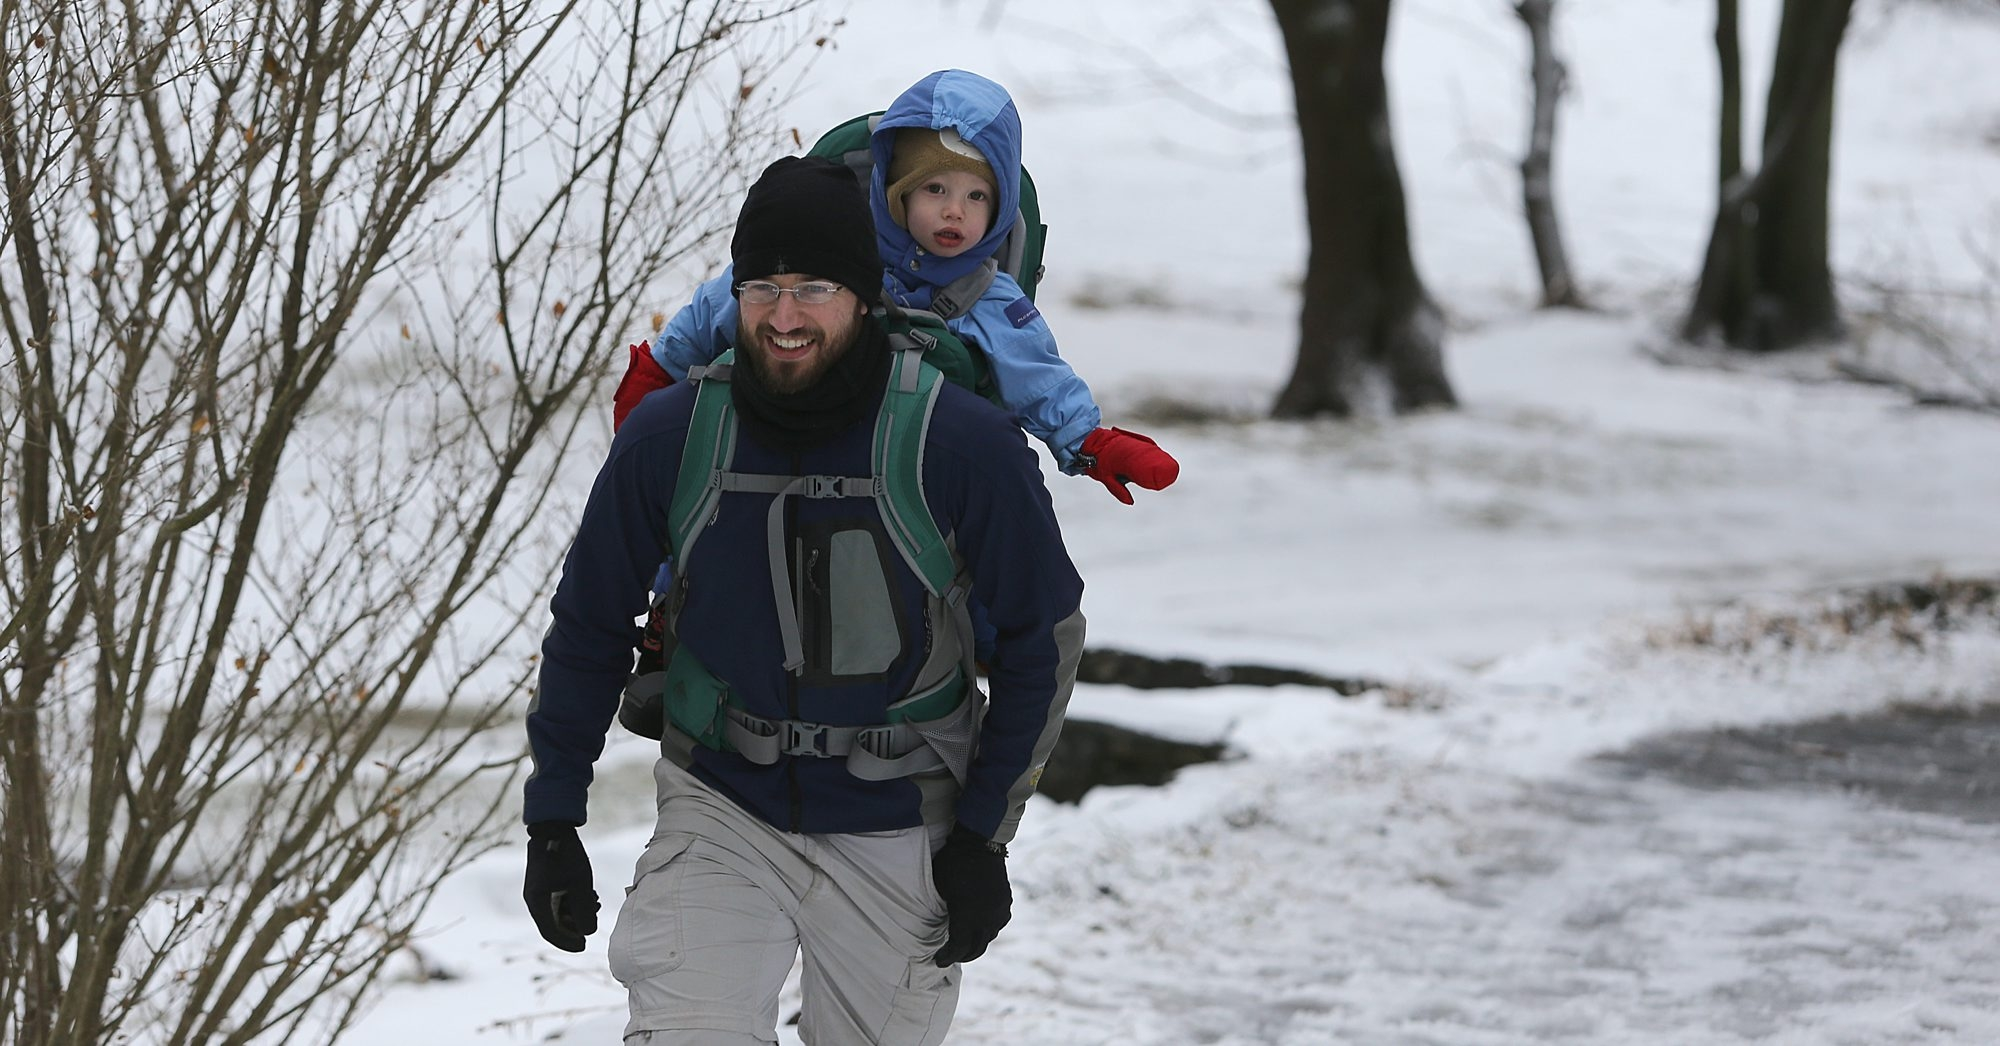 Nathan Kershner and his son, Bryce, 22-months old, go for a hike in Amherst State Park Sunday.